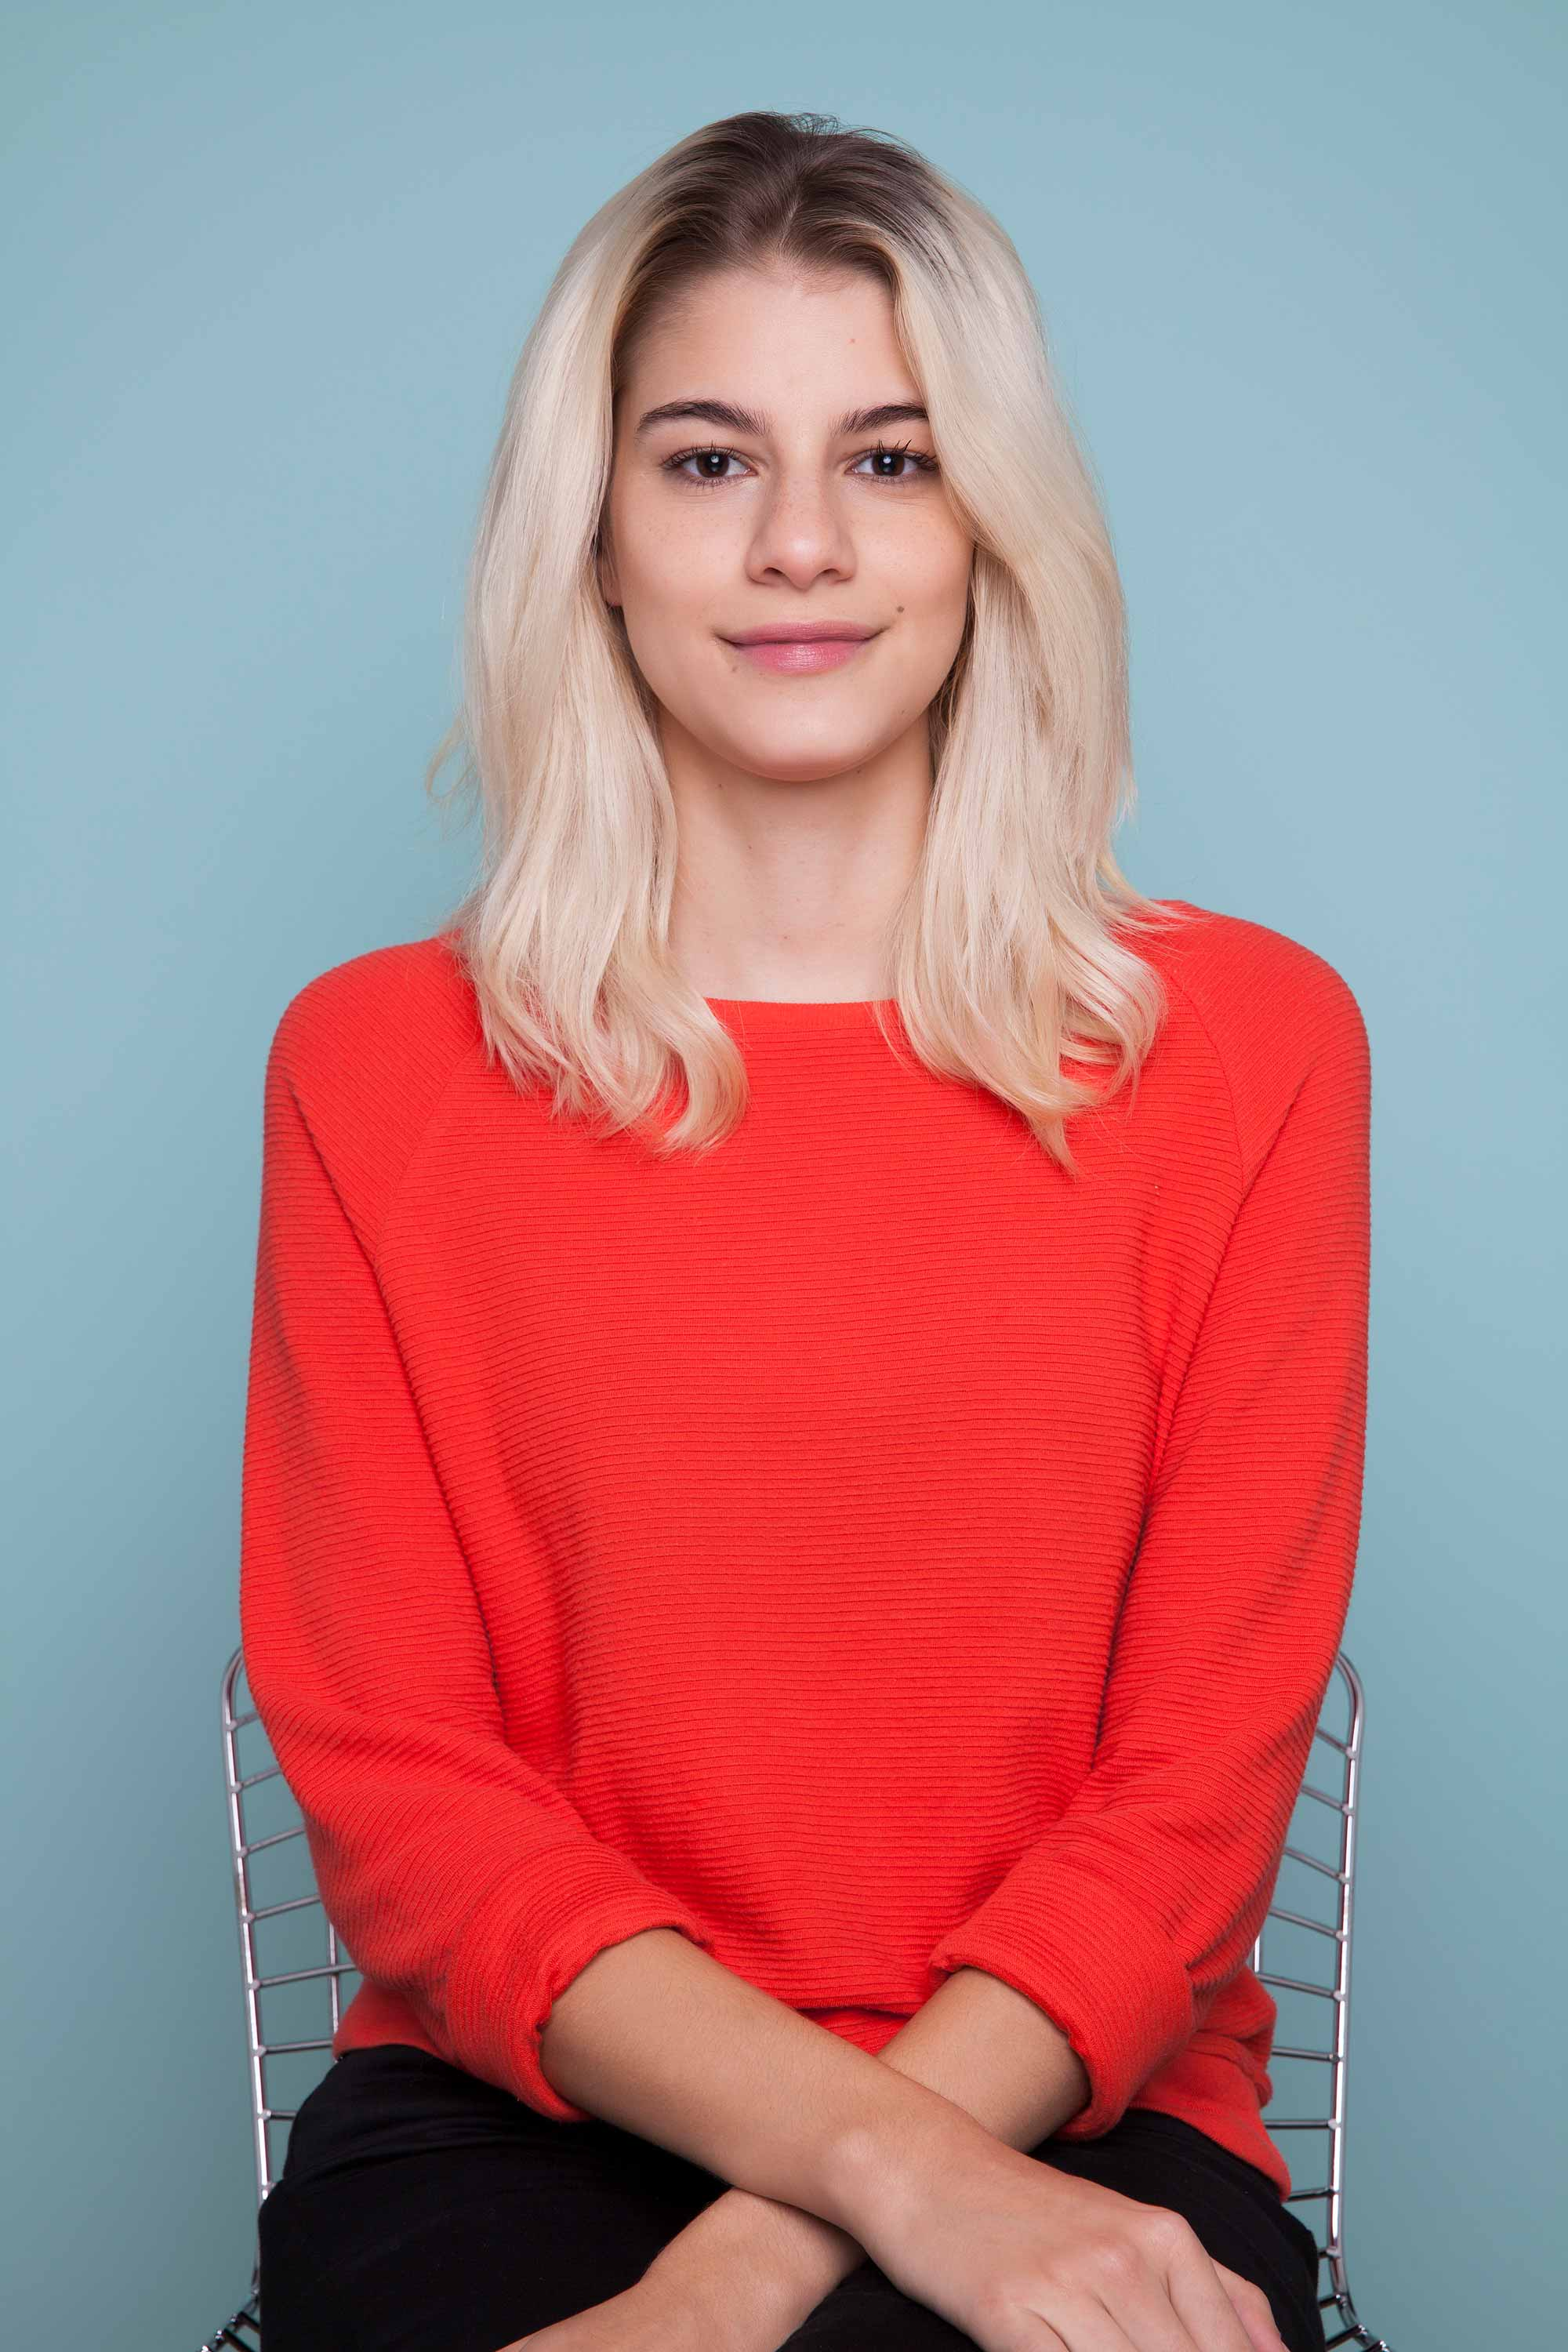 snake braid hairstyles: Blonde woman with medium length hair sitting in studio with blue background wearing a red jumper.